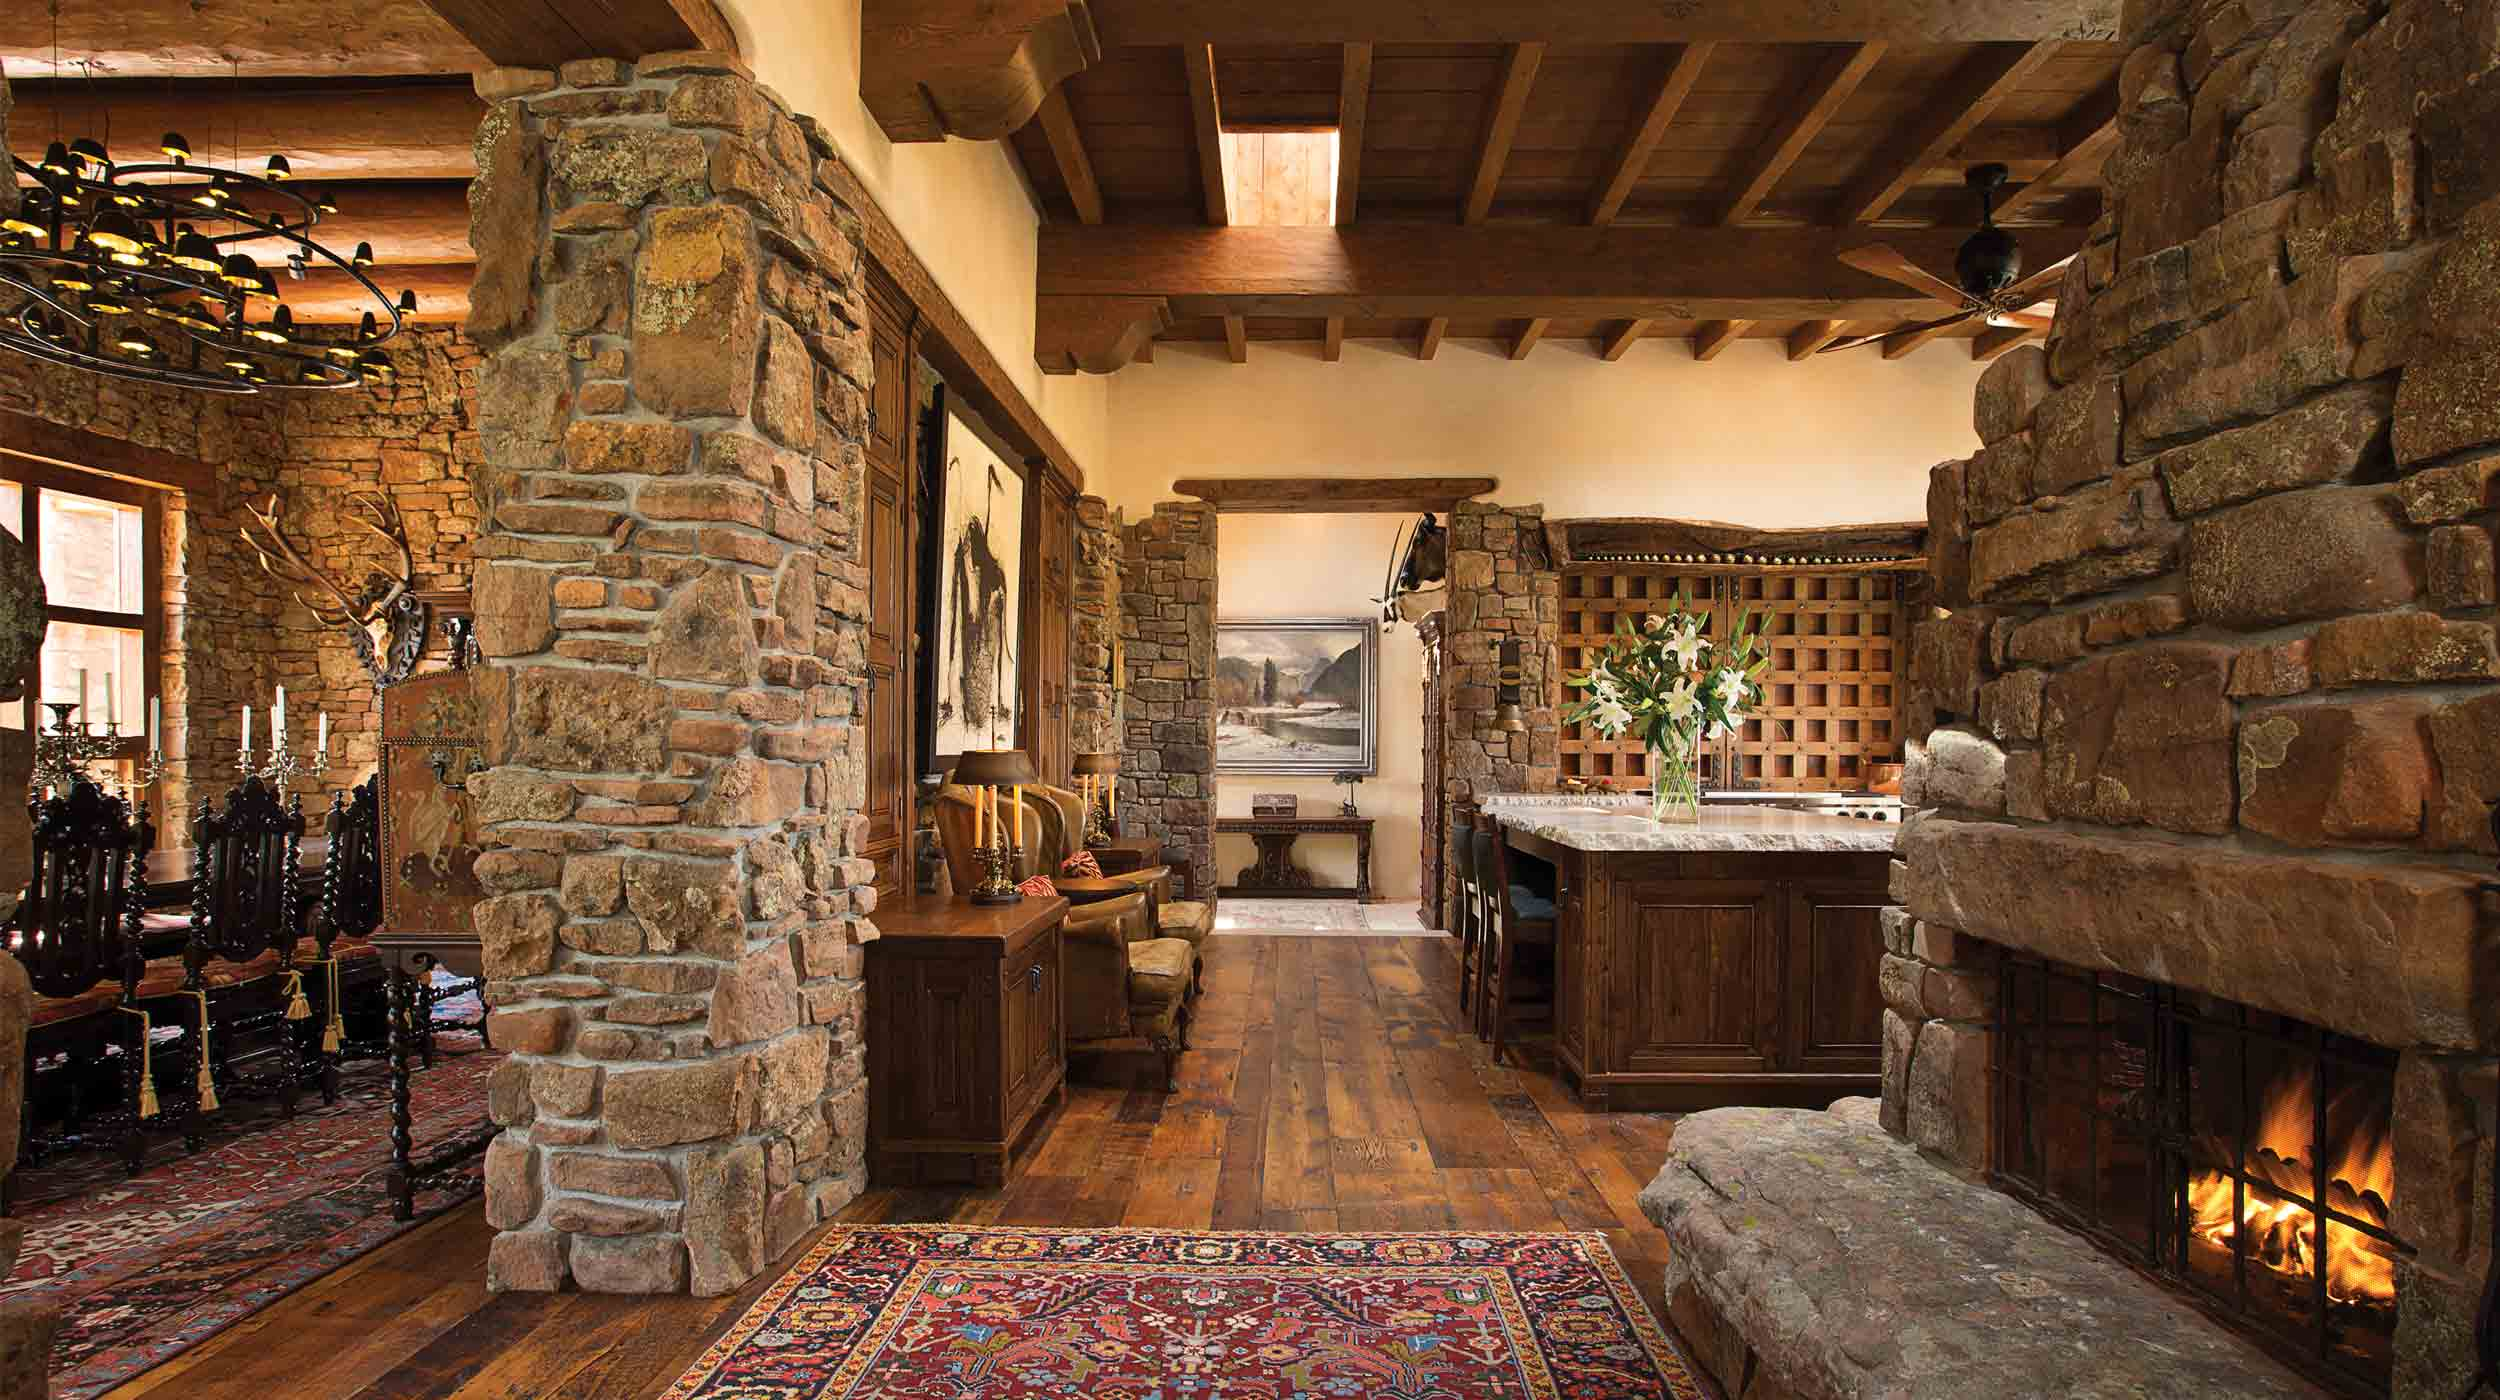 Woods design builders custom home builder santa fe new for Home builders in new mexico